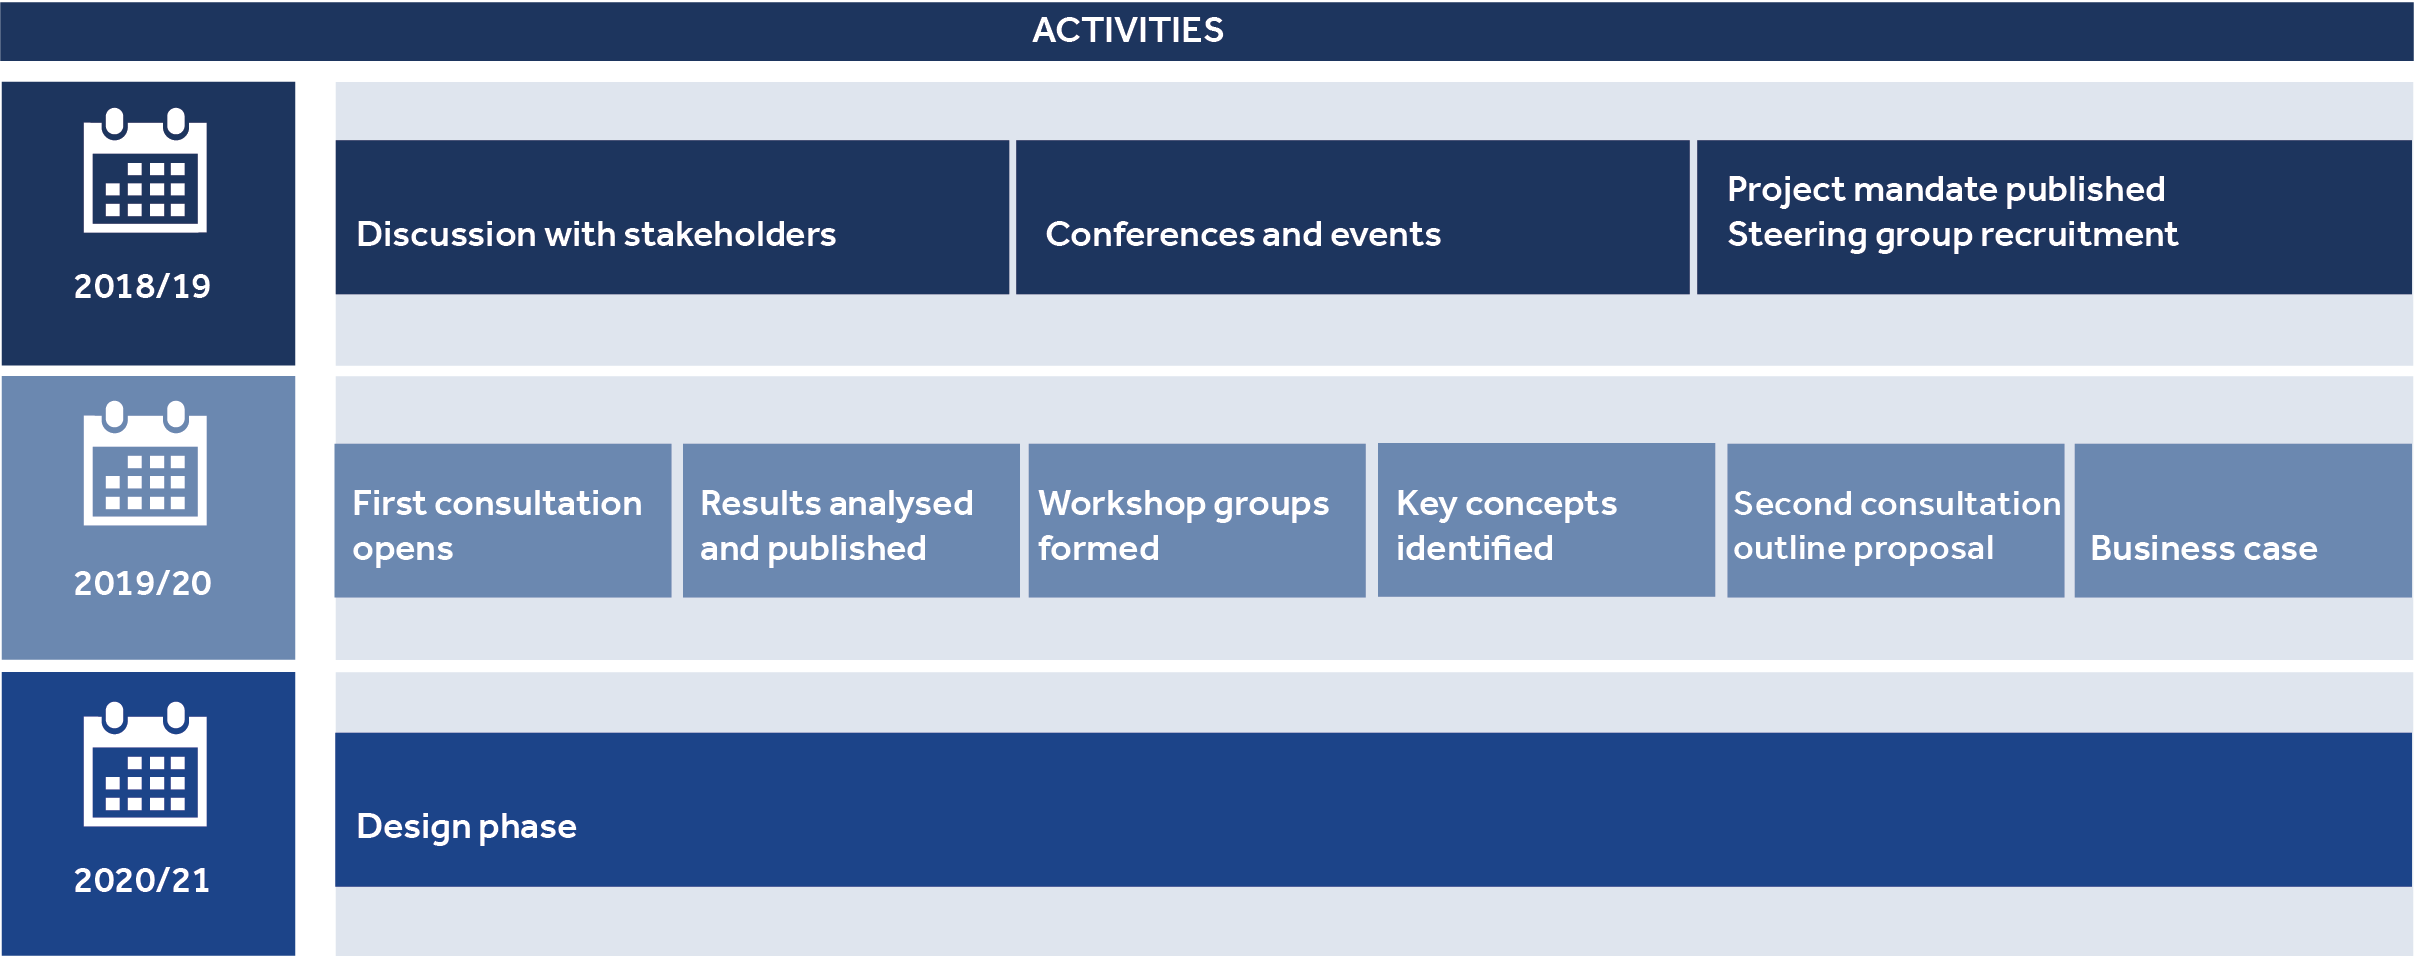 HE-BCI activity timeline